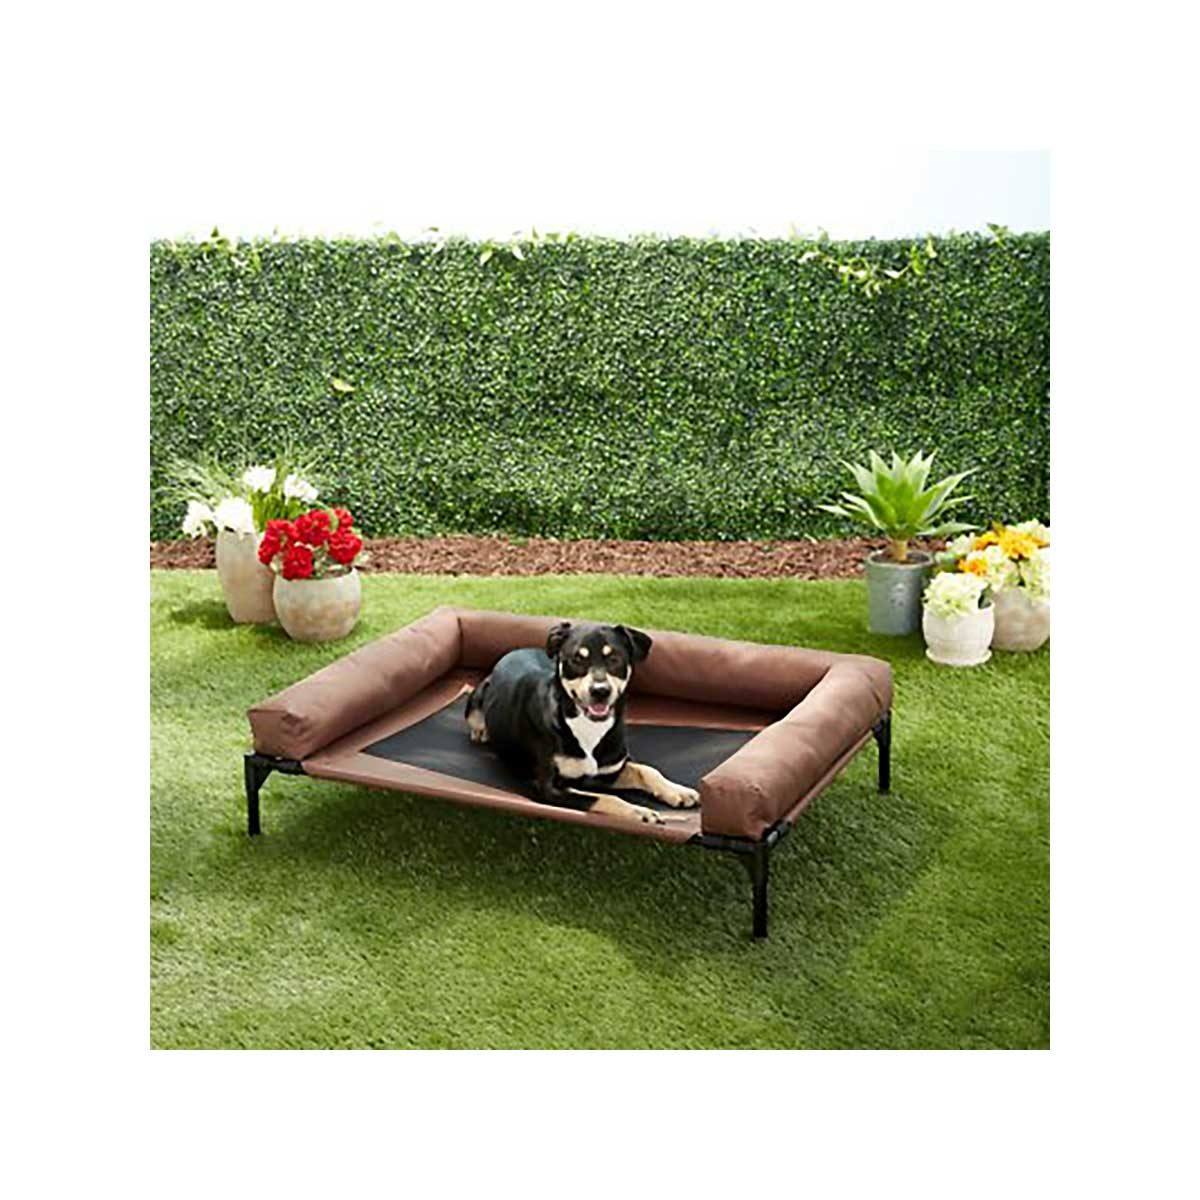 Dog Bed 121246 Main. Ac Sl400 V1566324029